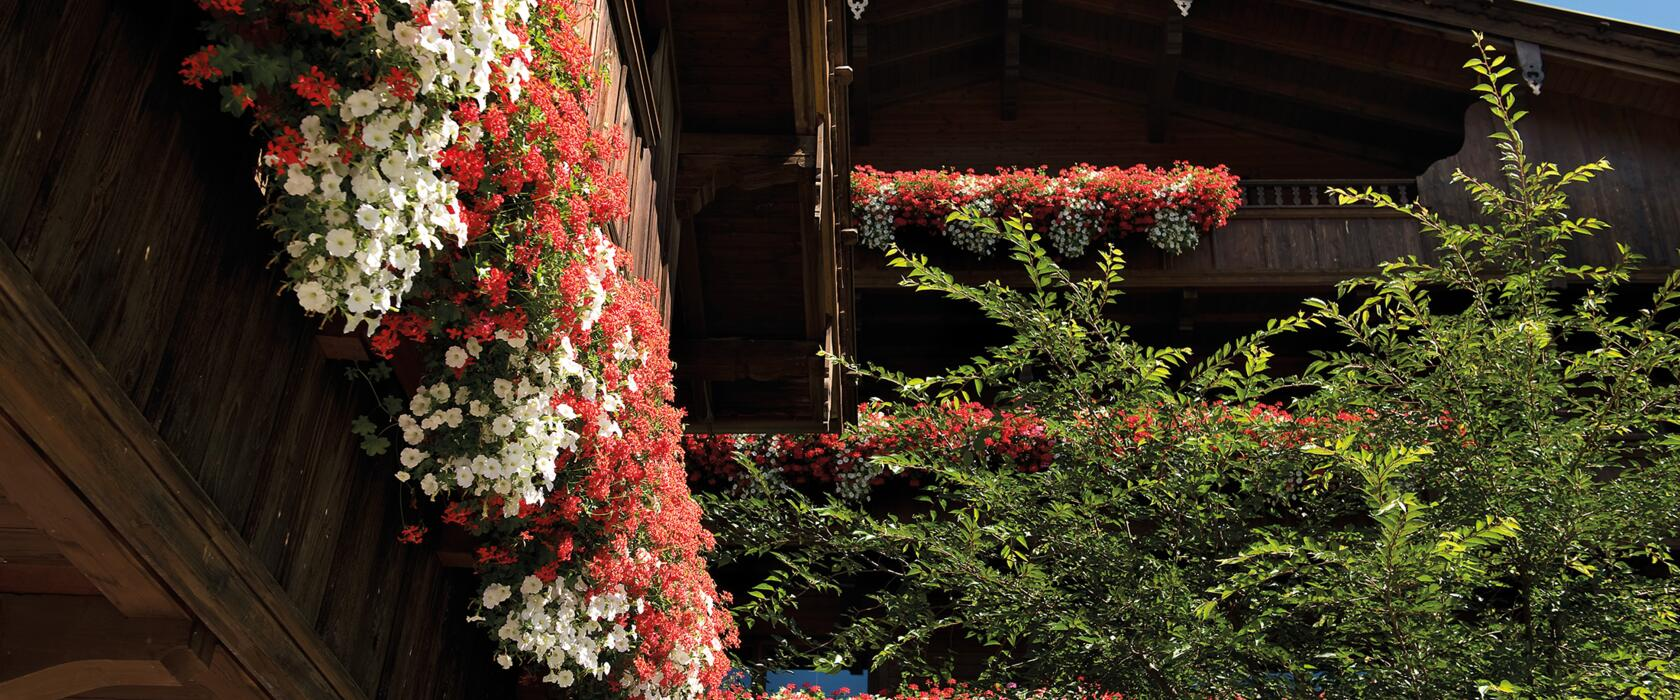 Summer Holiday Offers in Alpbach: Prices at the Hotel Böglerhof